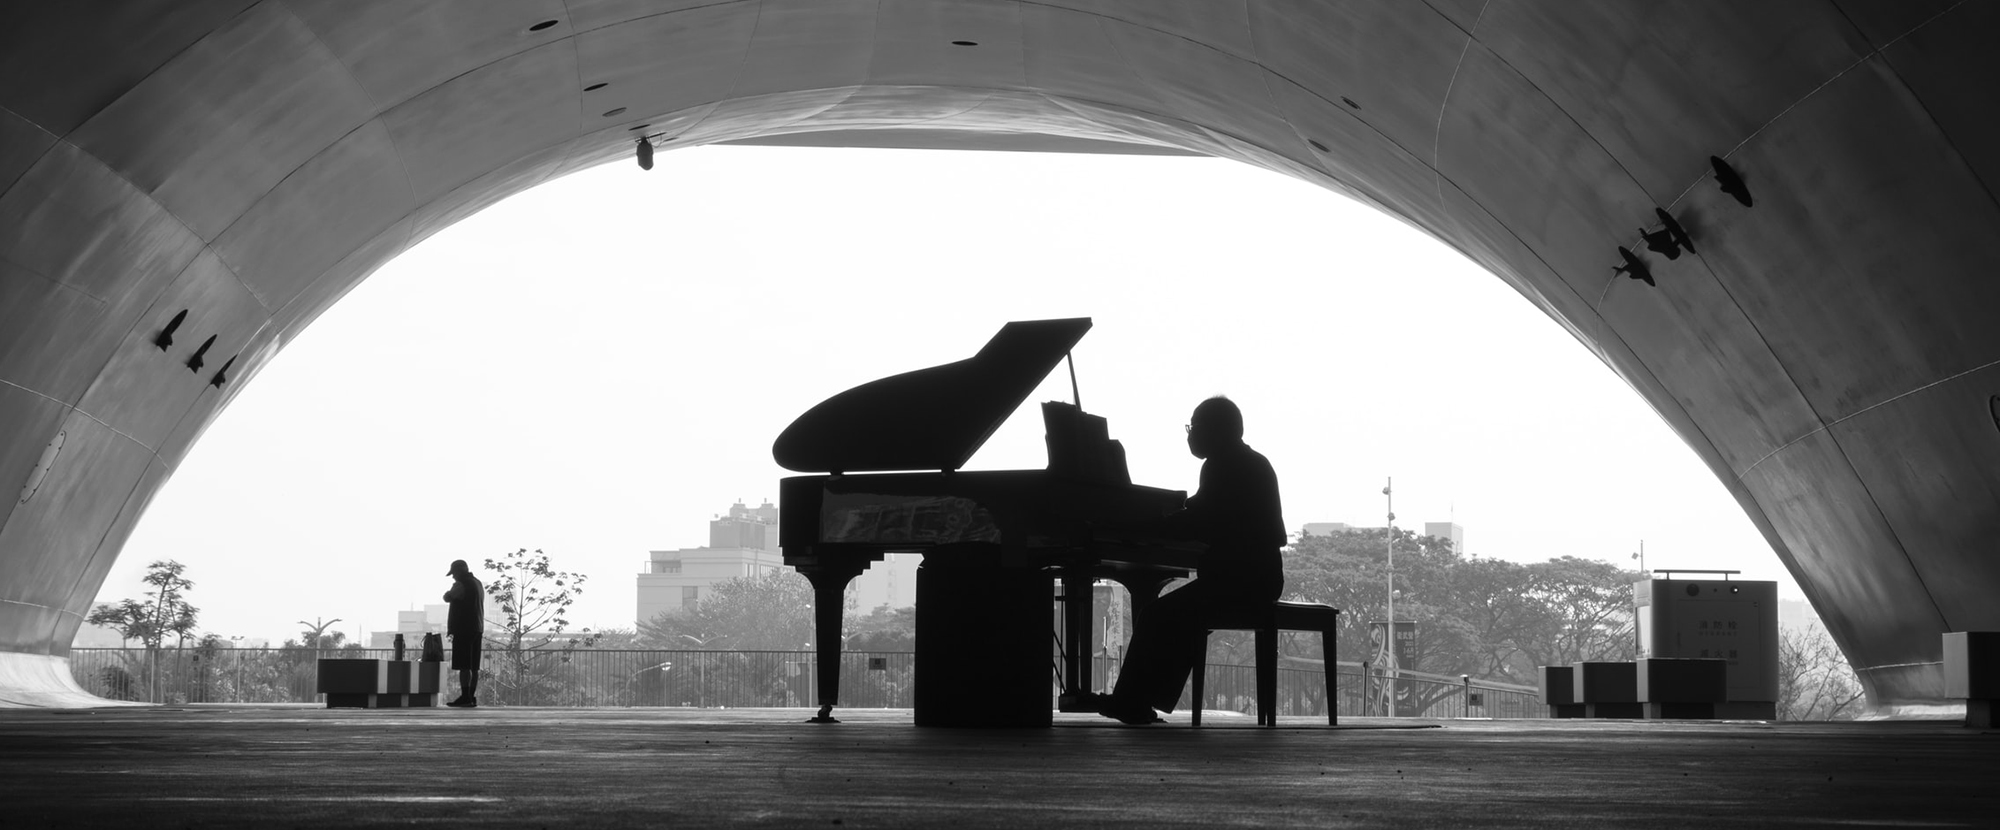 black and white photo of a man playing grand piano under an outdoor wide domed roof.